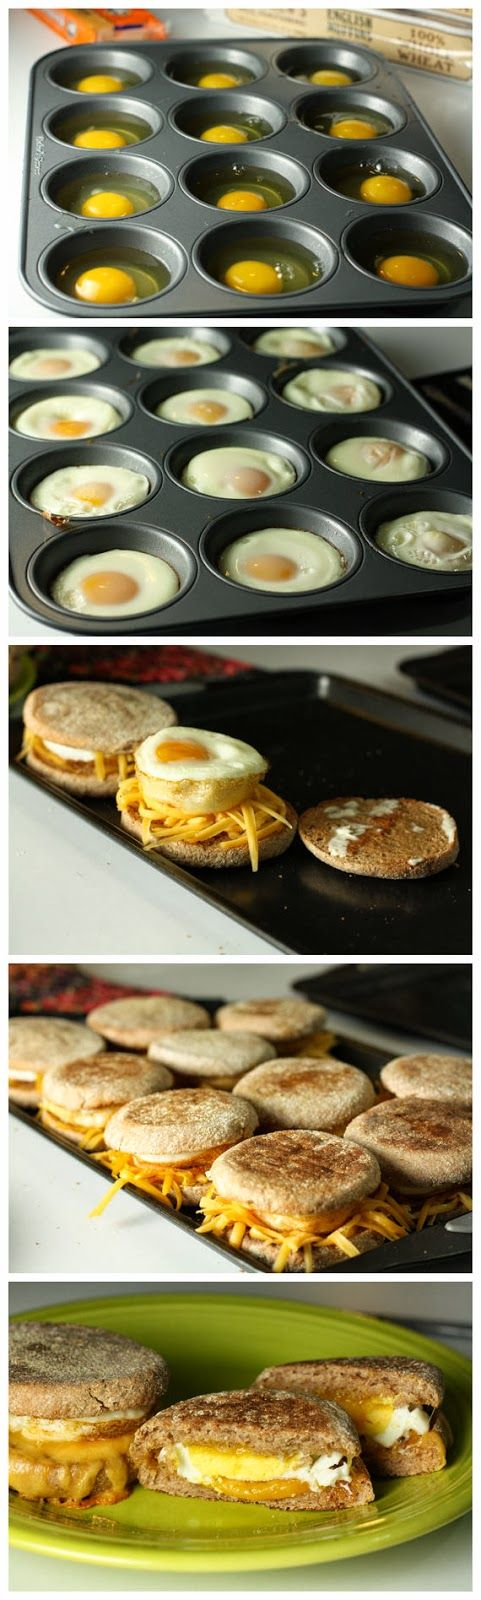 Egg and Cheese Breakfast Sandwiches in bulk for brunch/breakfast parties or make ahead breakfast on the go. Switch out ingredients: bacon, Canadian bacon, ham, different cheeses, etc.